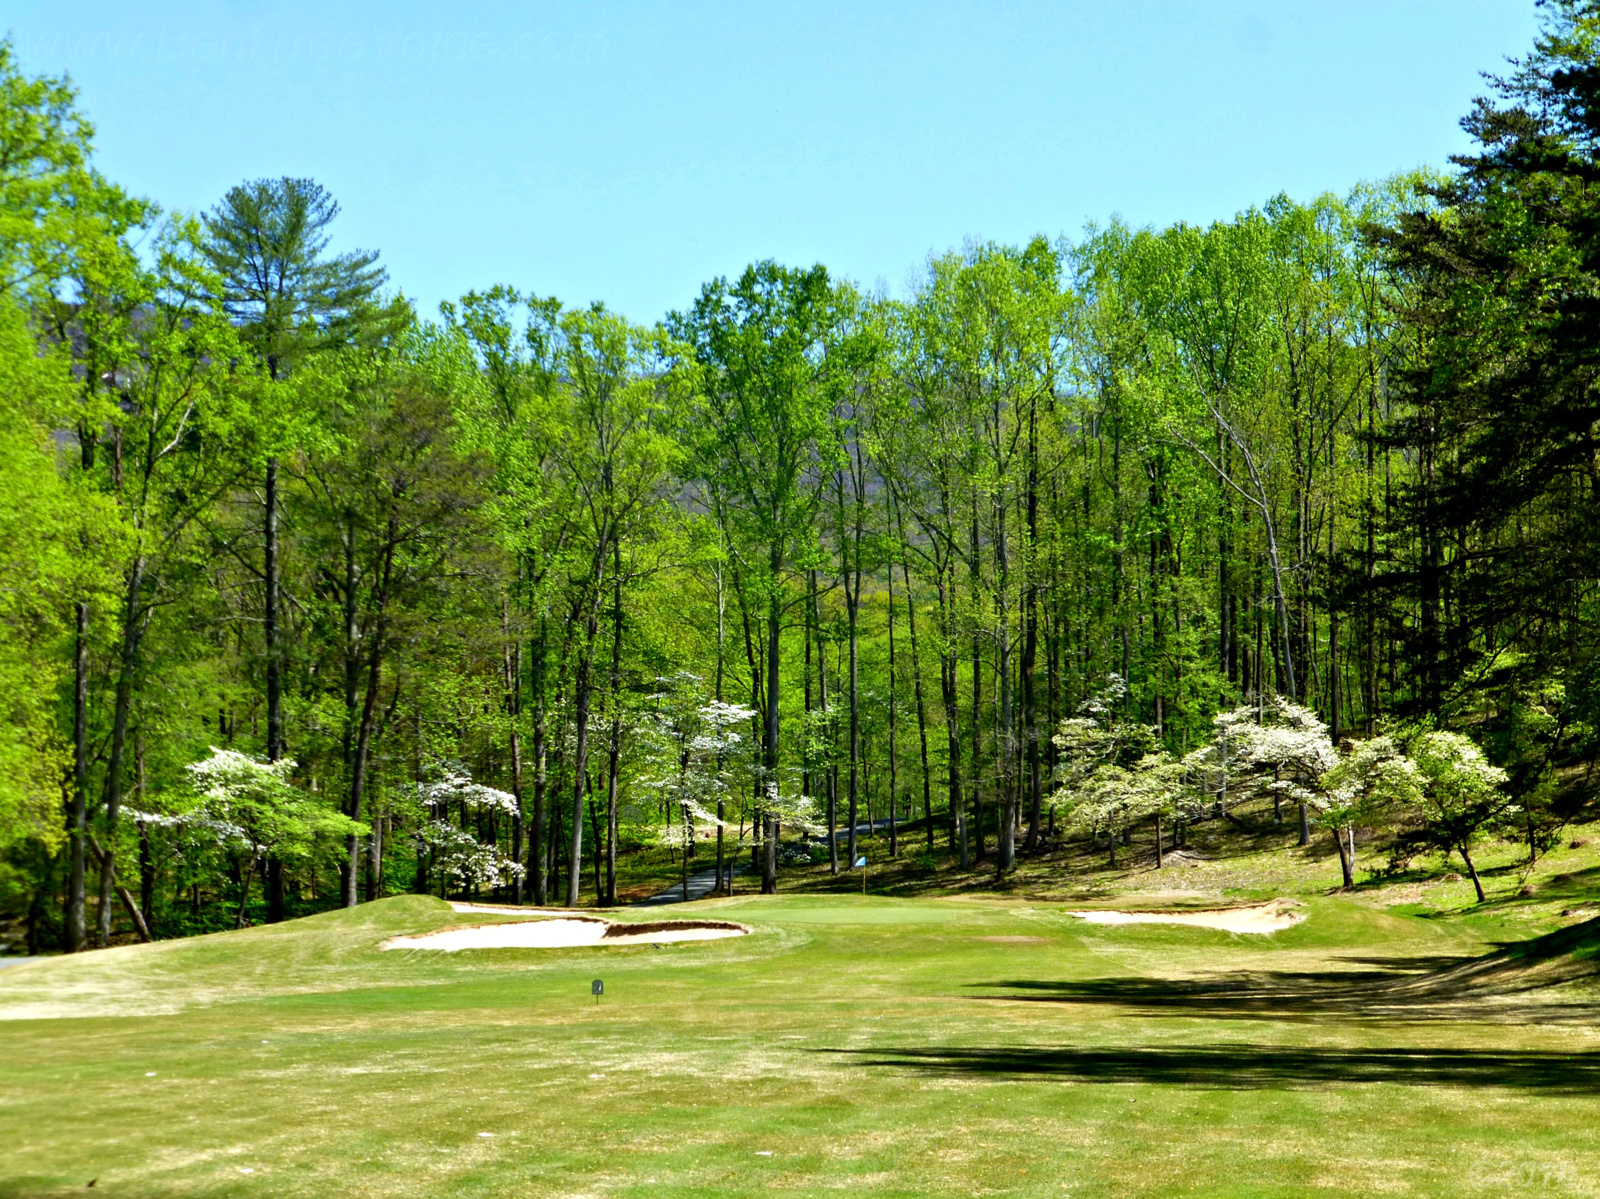 April 20, 2018 - Hole 10, Bent Tree